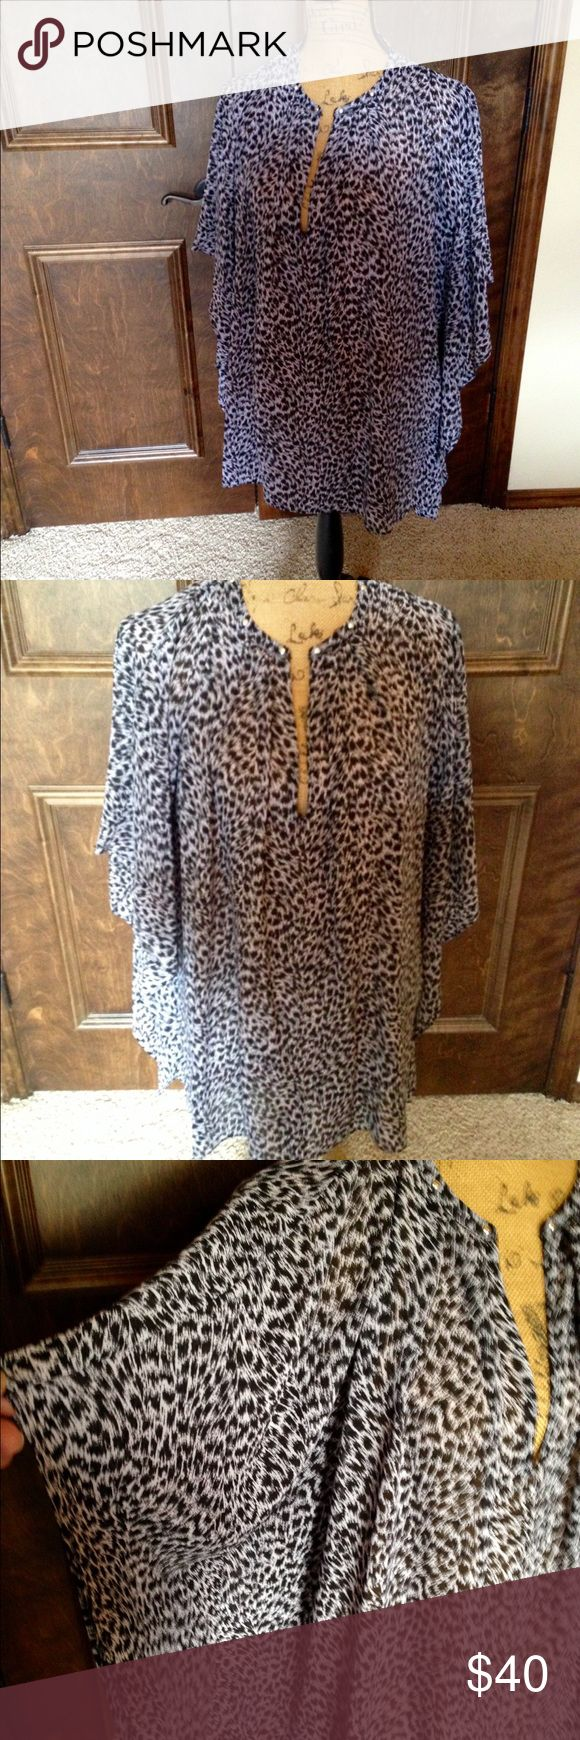 NWOT Michael Kors Batwing Top New without tags. Gorgeous black/white ocelot flowy top. Adorable batwing sleeve detail with silver embellishments at neckline. So flattering and forgiving!  Size XL. No Trades MICHAEL Michael Kors Tops Blouses